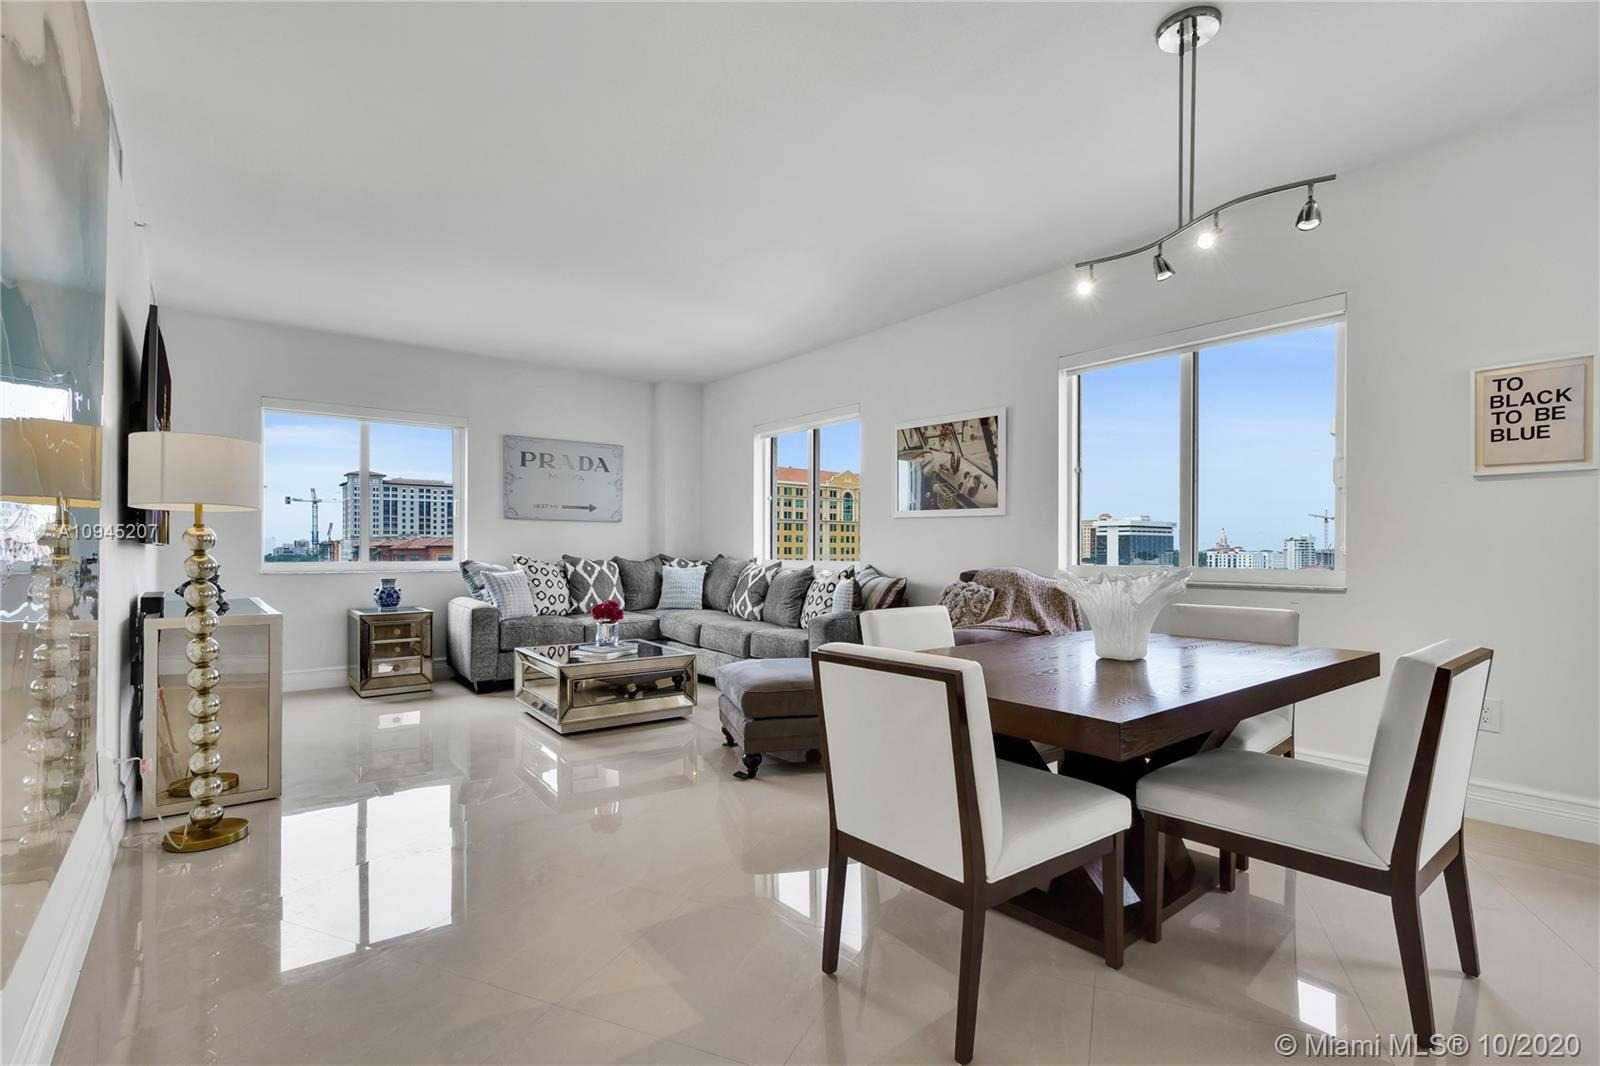 10 Aragon Ave # 805, Coral Gables, Florida 33134, 3 Bedrooms Bedrooms, ,2 BathroomsBathrooms,Residential,For Sale,10 Aragon Ave # 805,A10945207